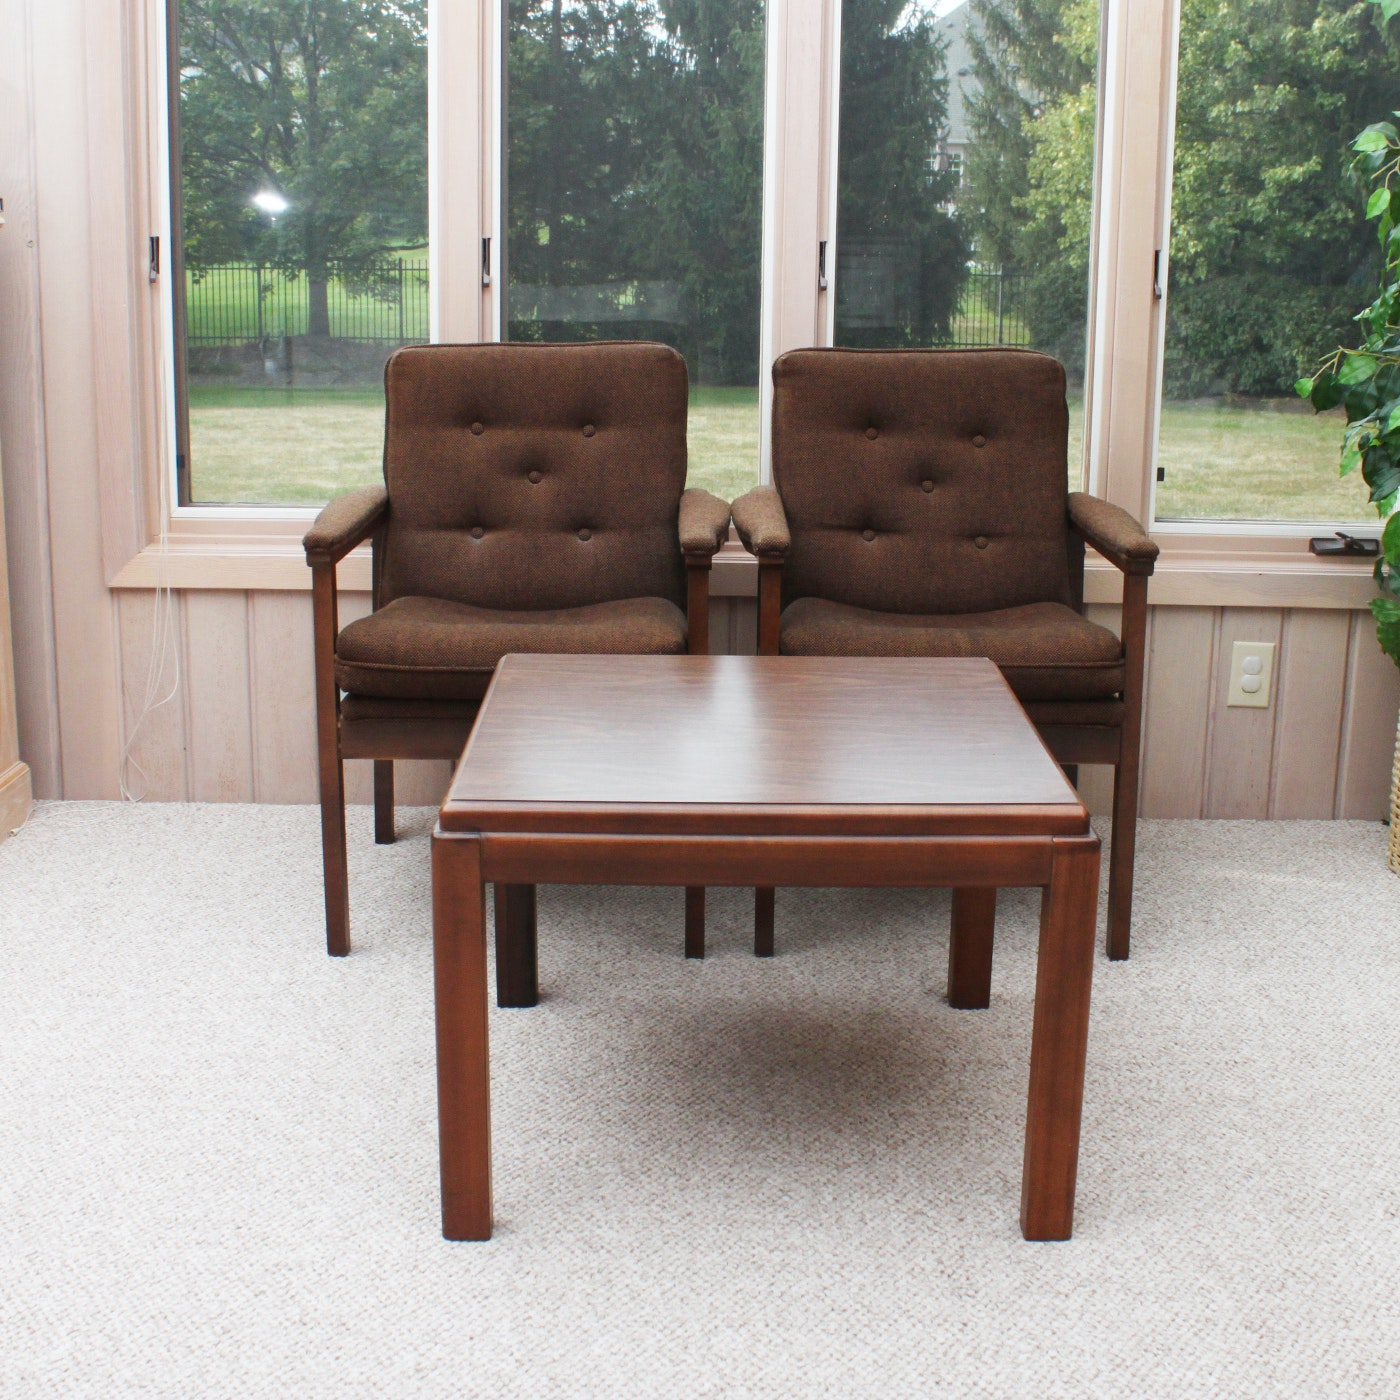 Two Office Chairs and a Lane Side Table